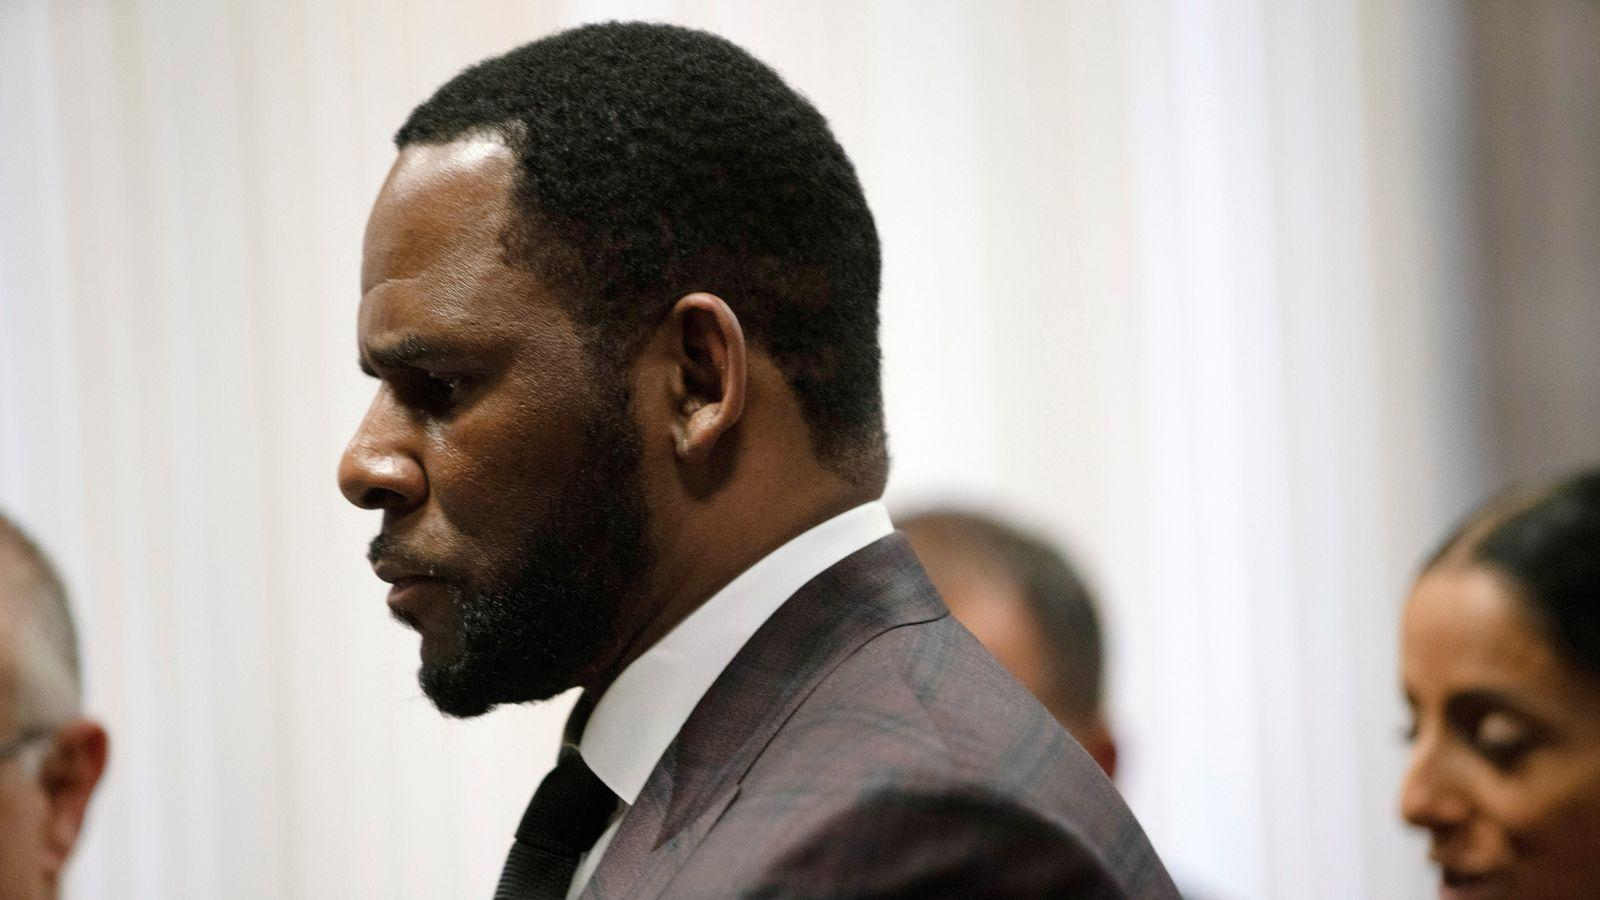 YouTube Removes R. Kelly's Channels - See More Details